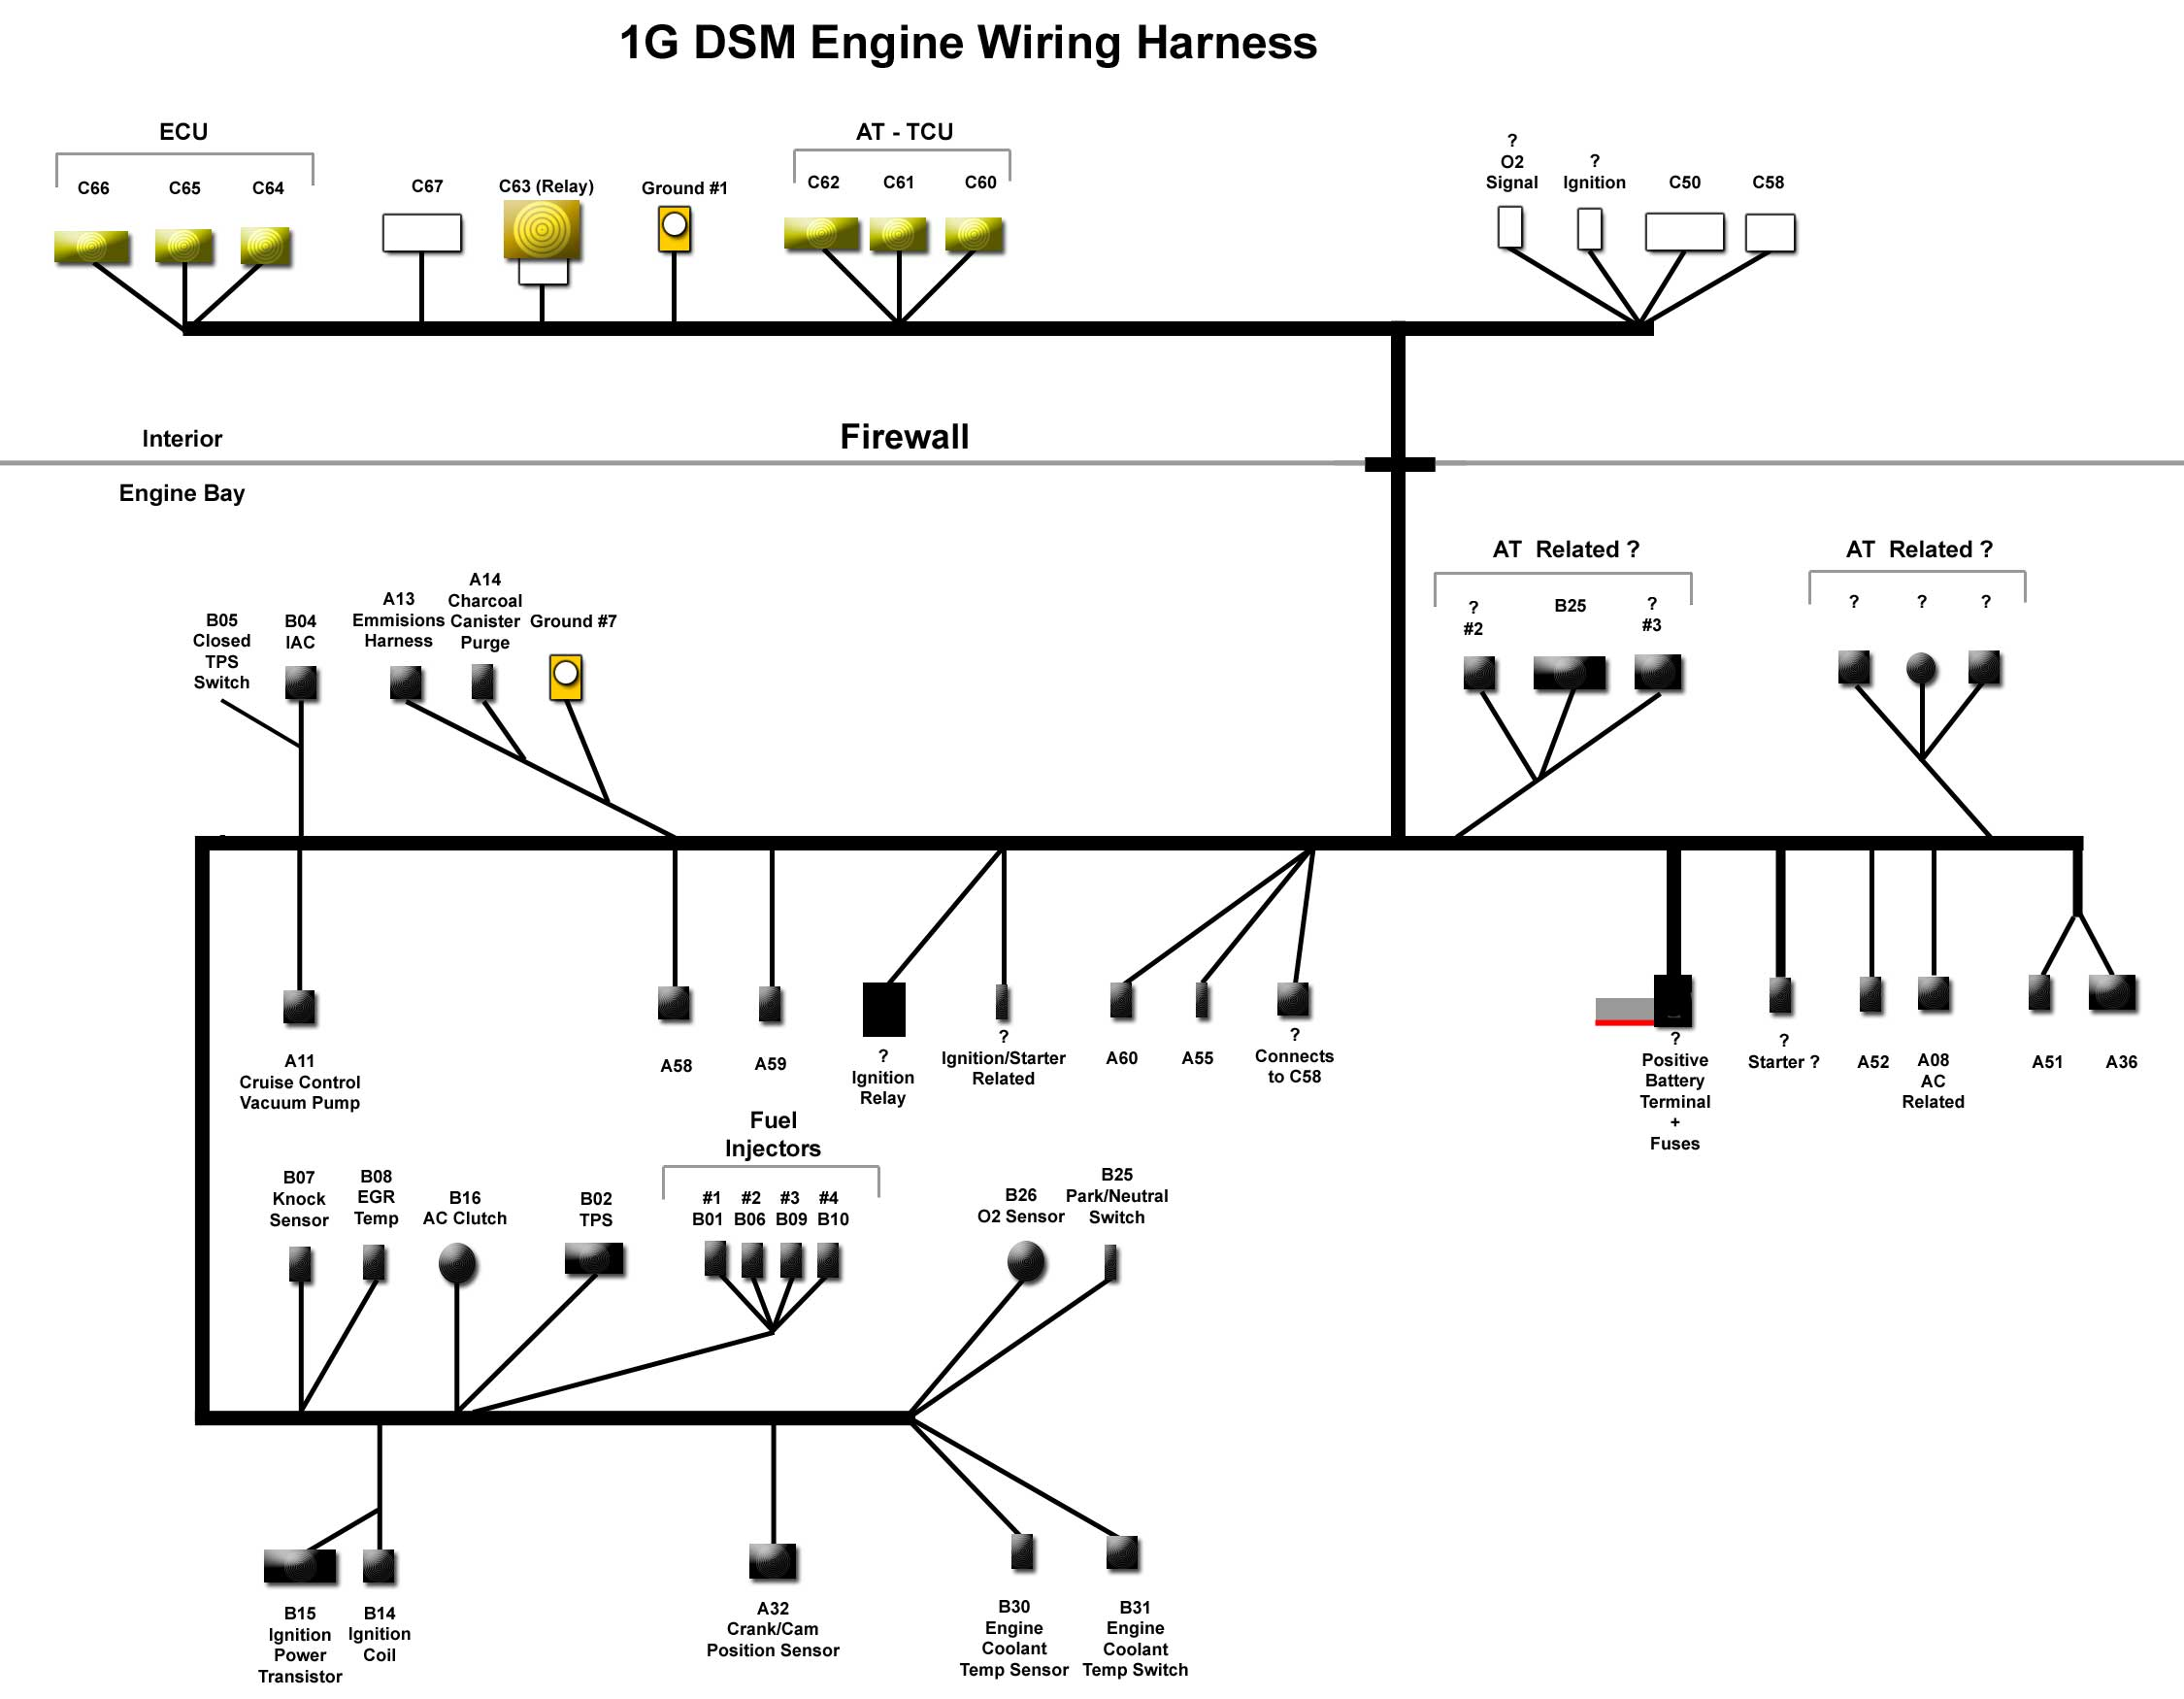 1G DSM EngineHarness 1gb dsm 4g63 turbo wiring harness diagram wiring harness diagram at gsmx.co